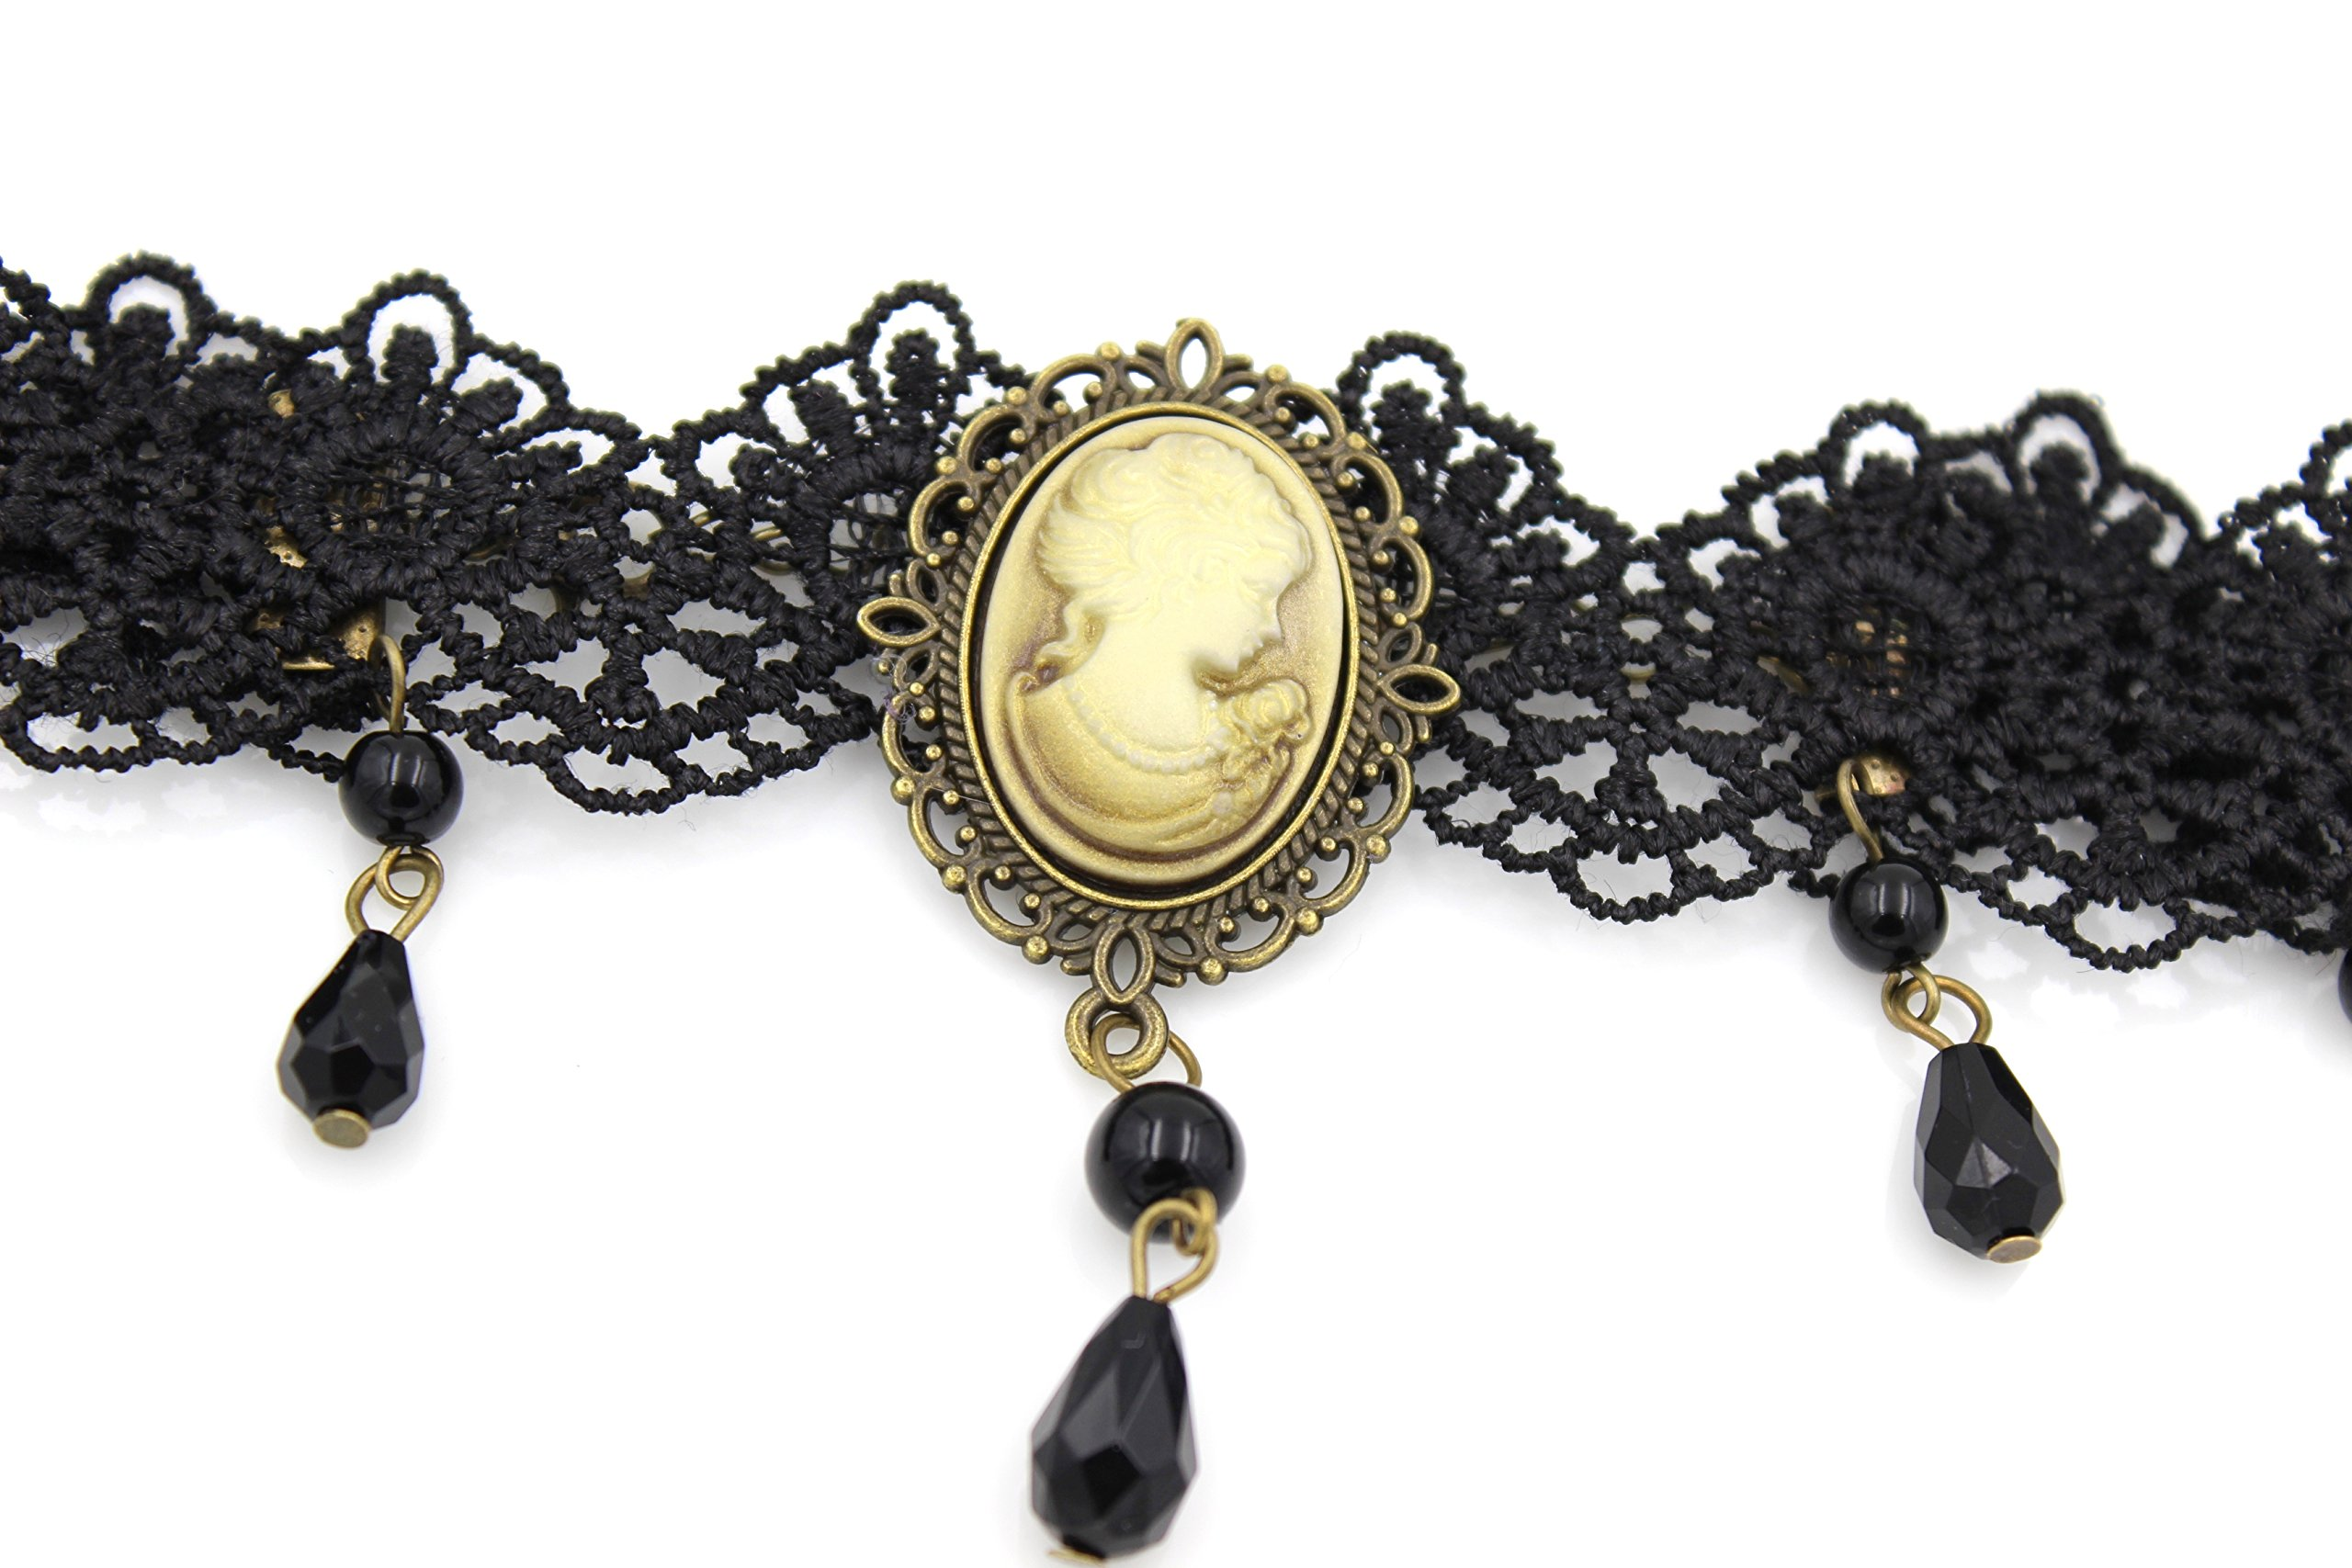 Glazed Black Cherry Steampunk Victorian Lady Cameo Choker Necklace - Gothic Goth - Bead Drop Vintage - Steam Punk - s30 3